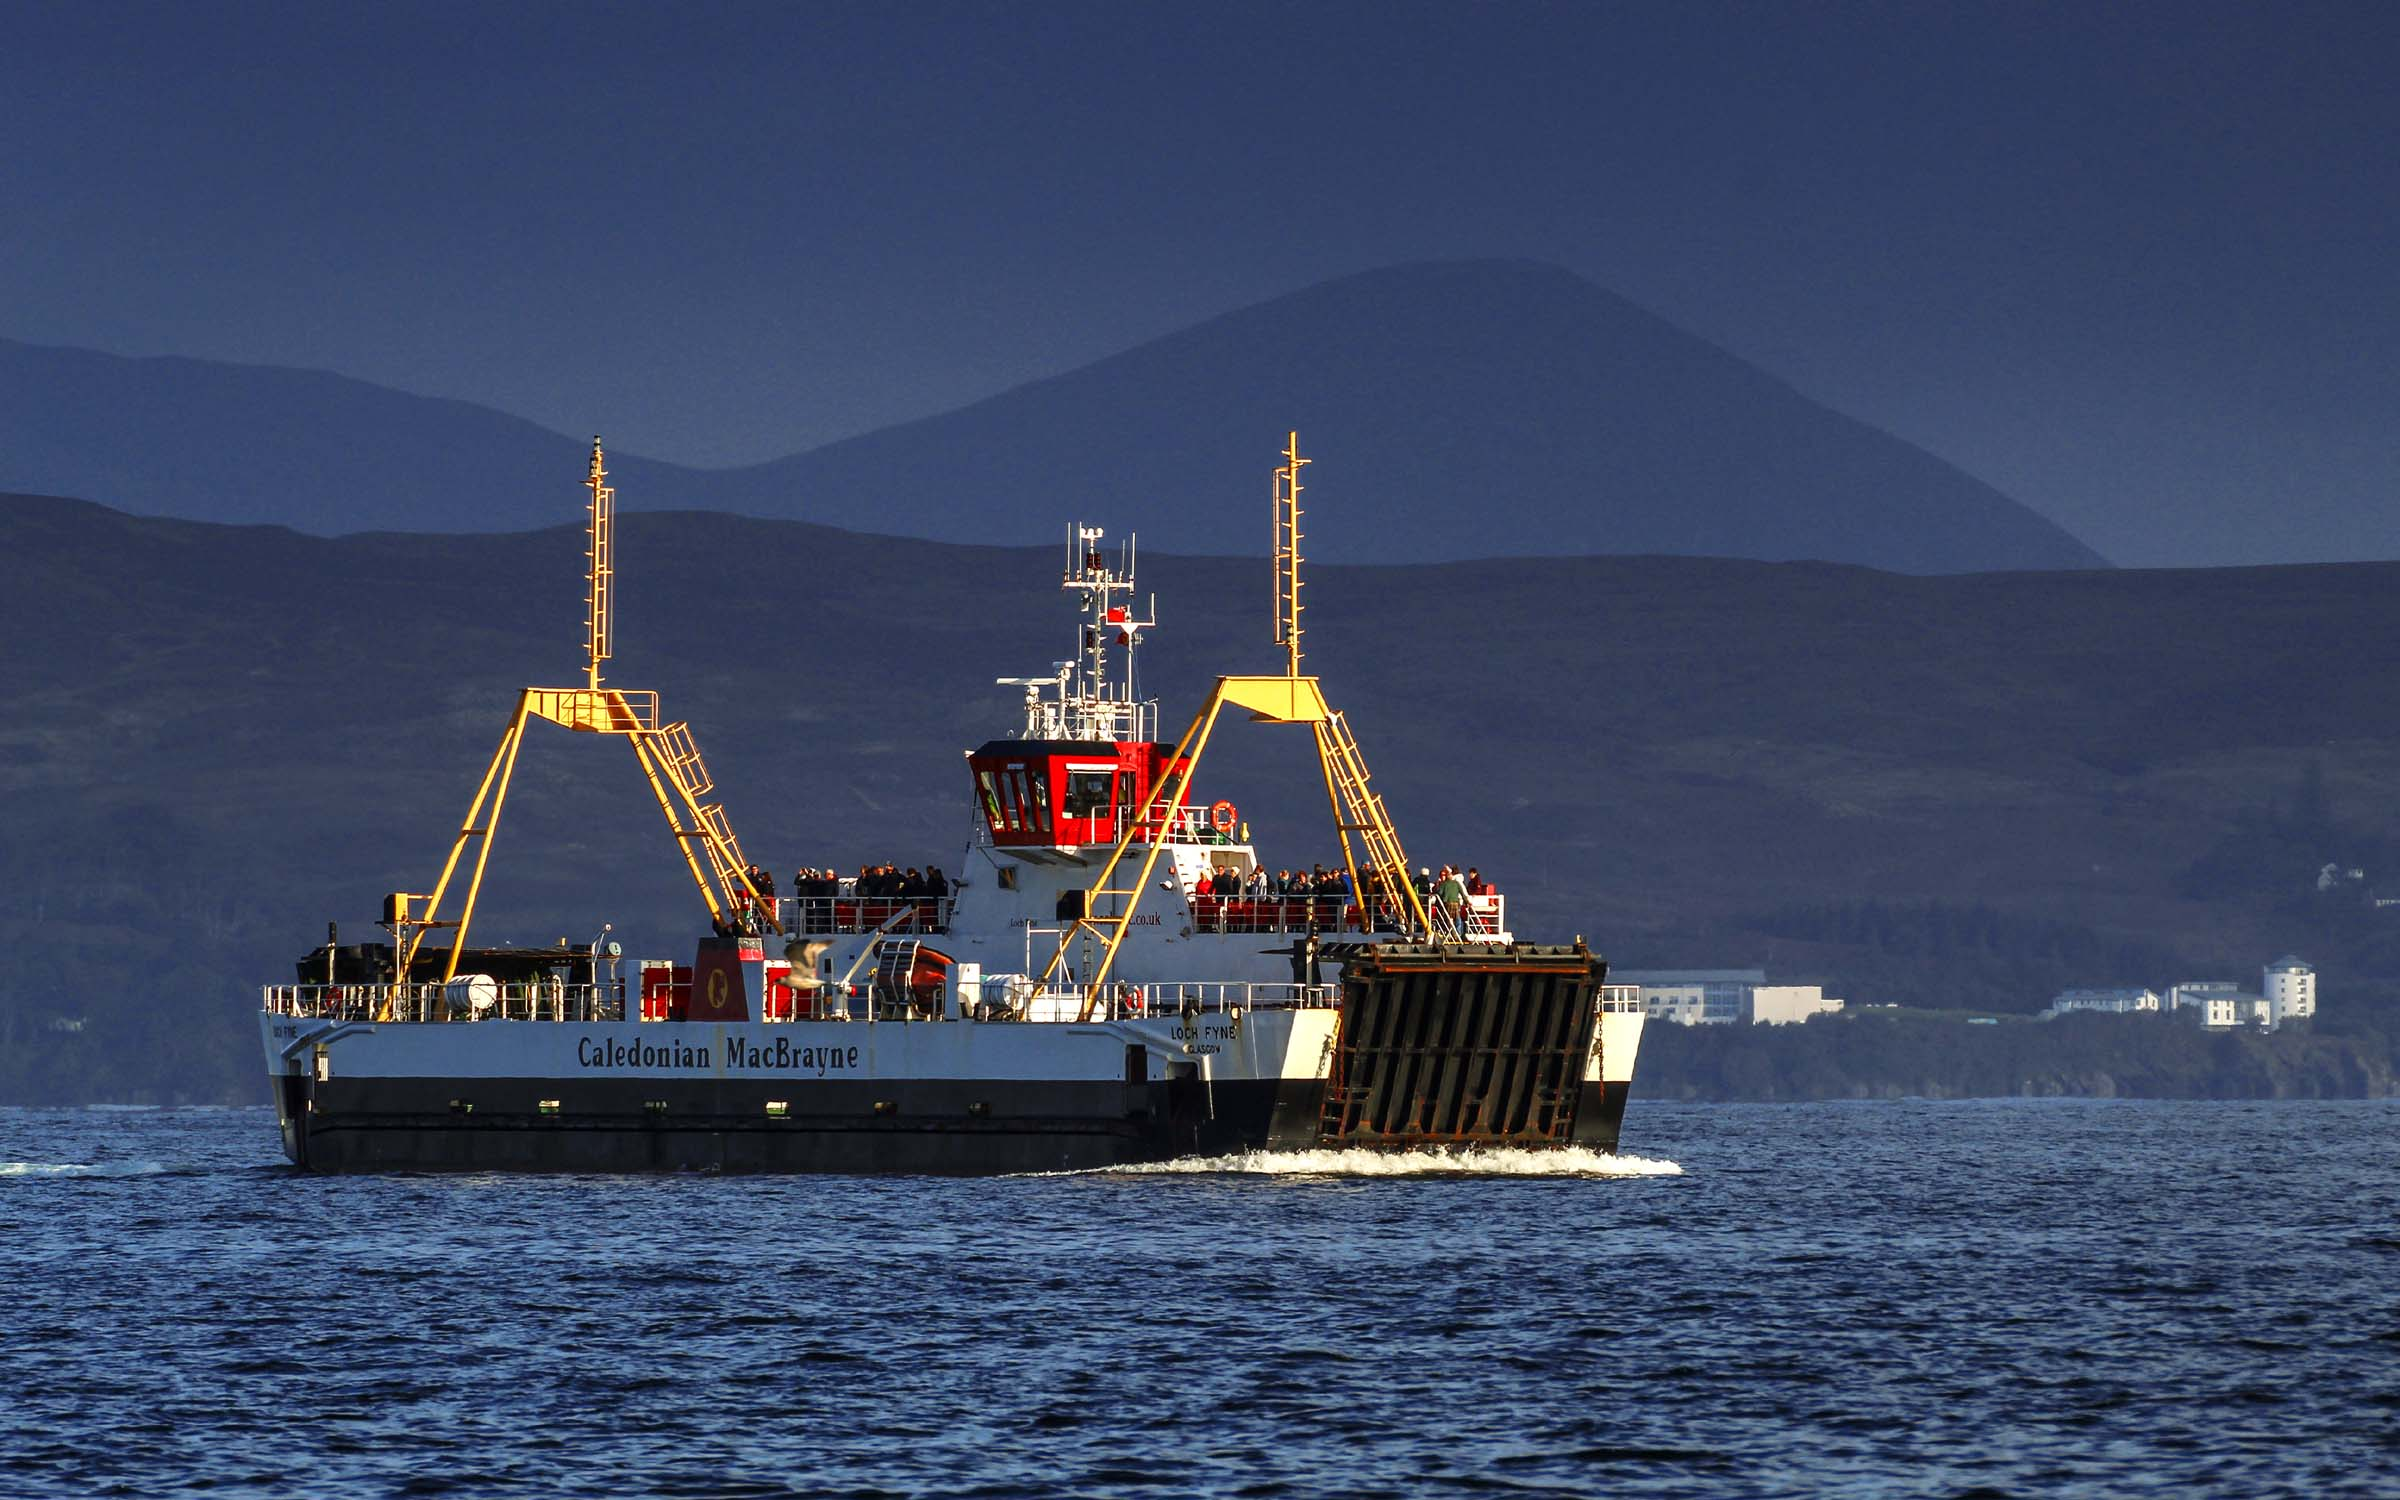 Loch Fyne in the Sound of Sleat (Ships of CalMac)